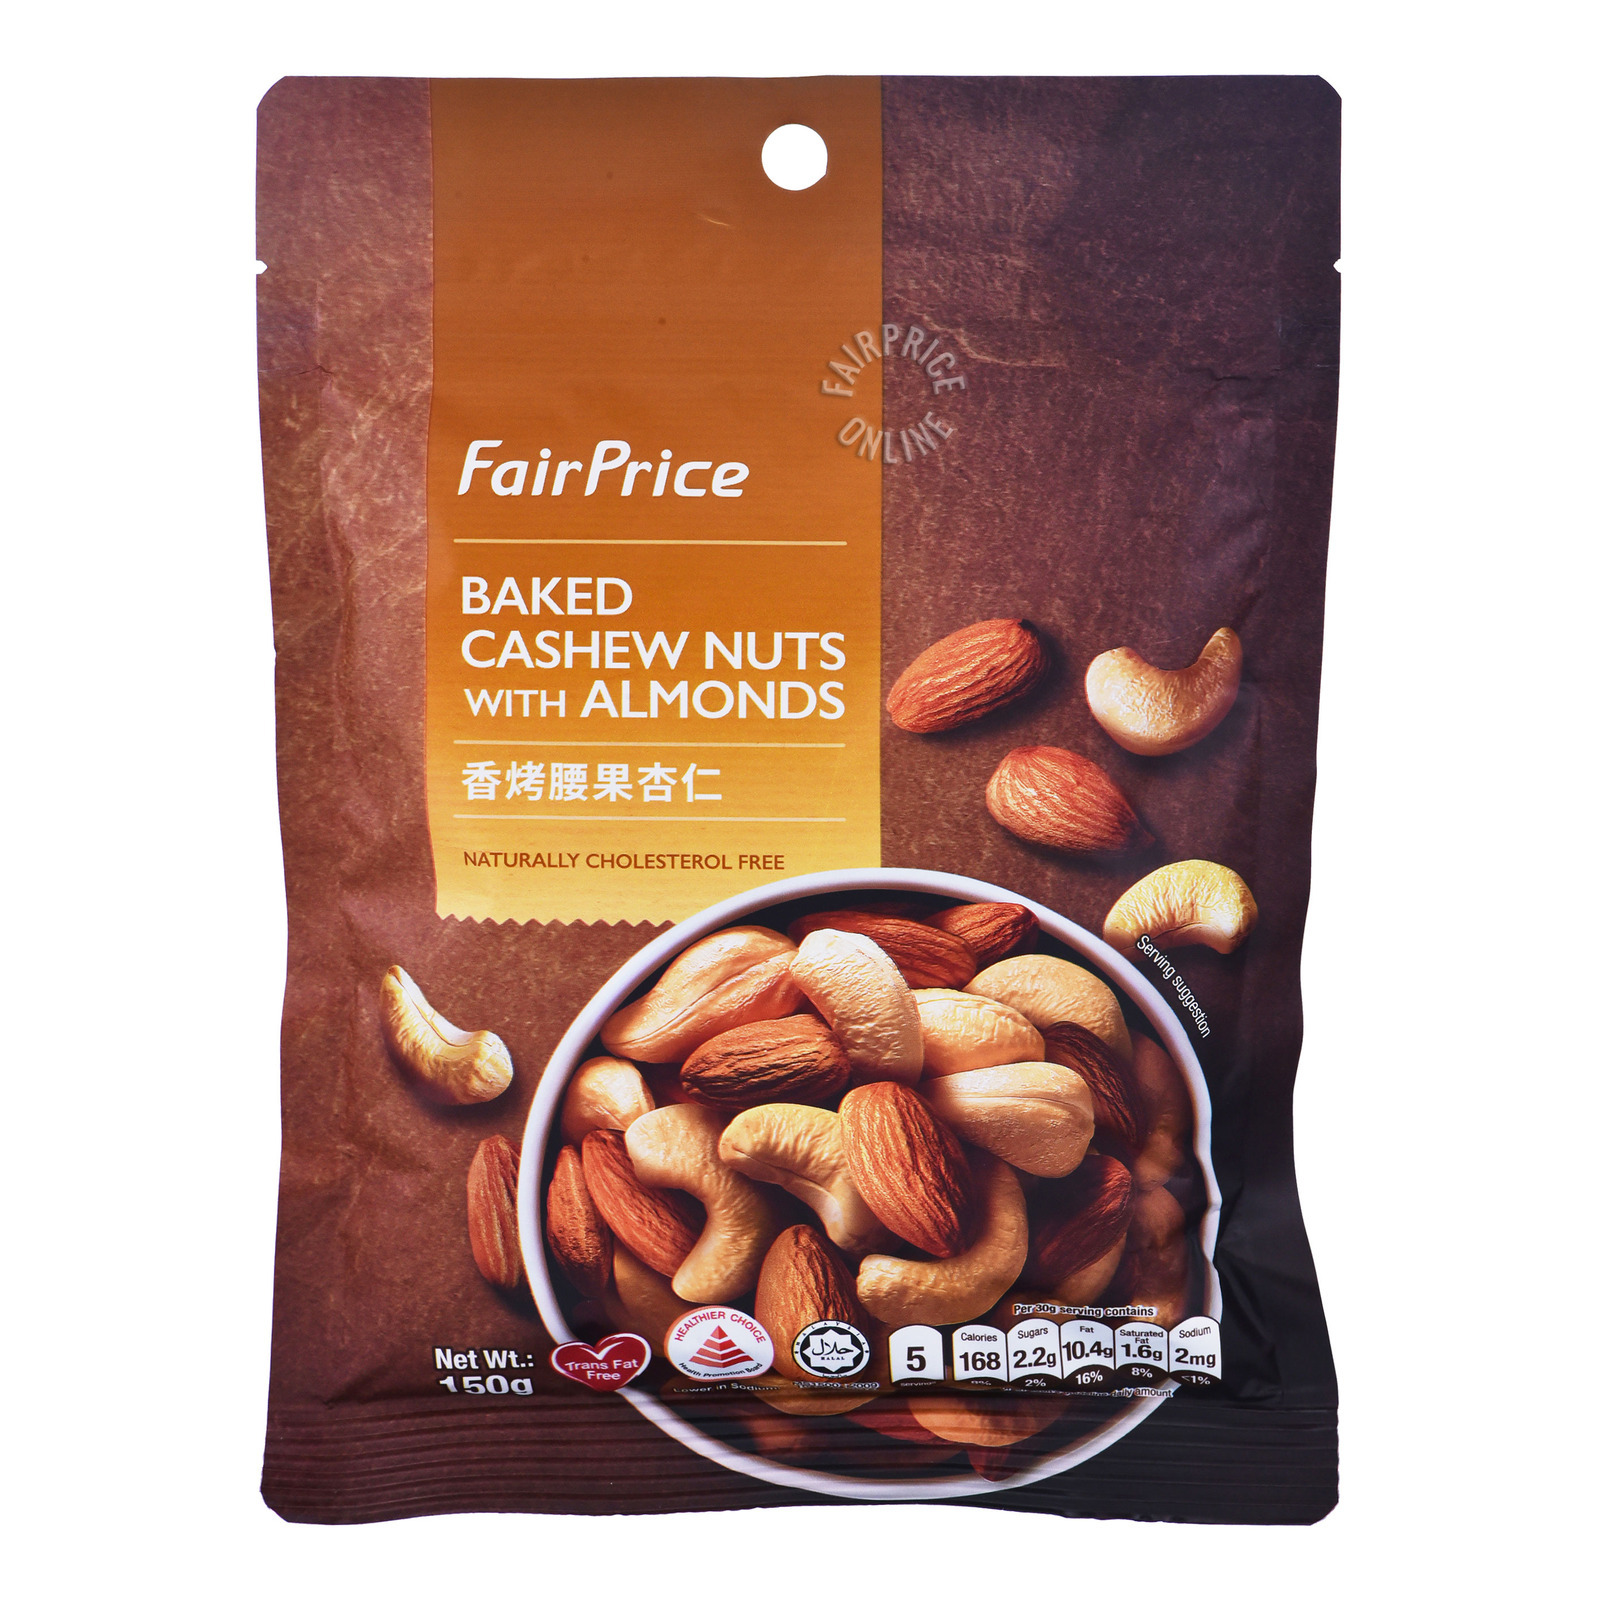 FairPrice Baked Cashew Nuts with Almonds